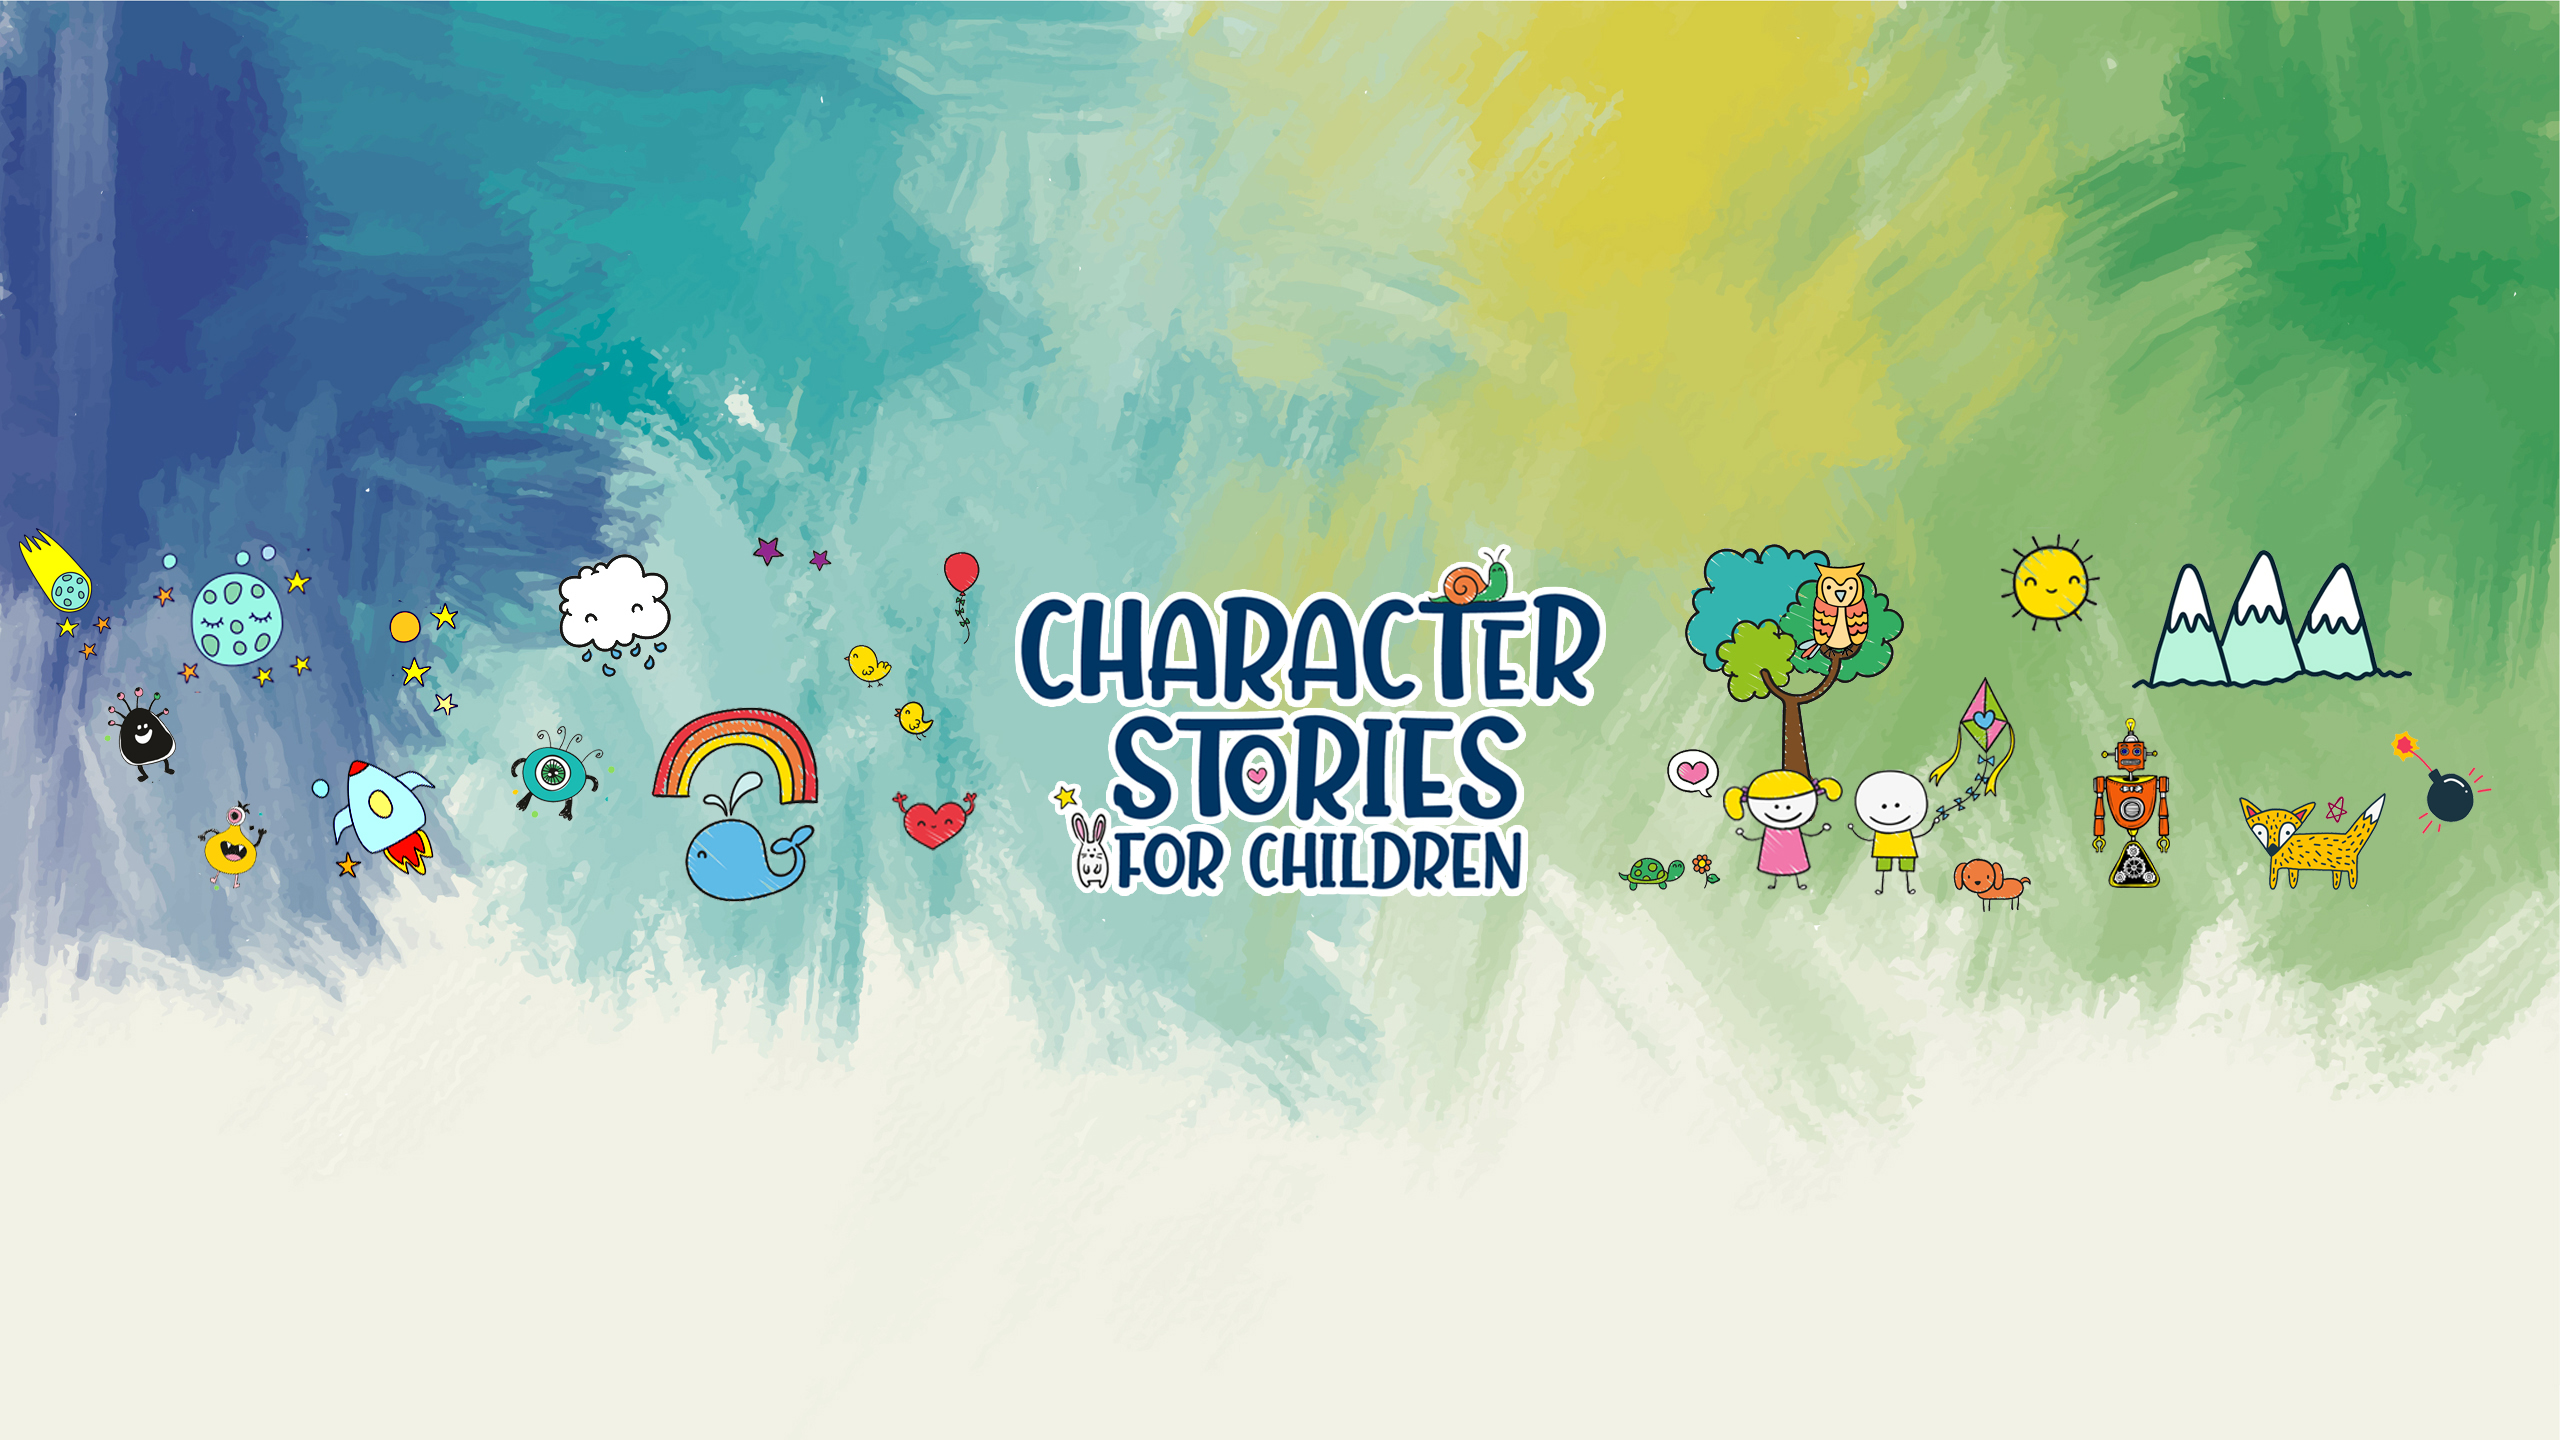 Character Stories banner